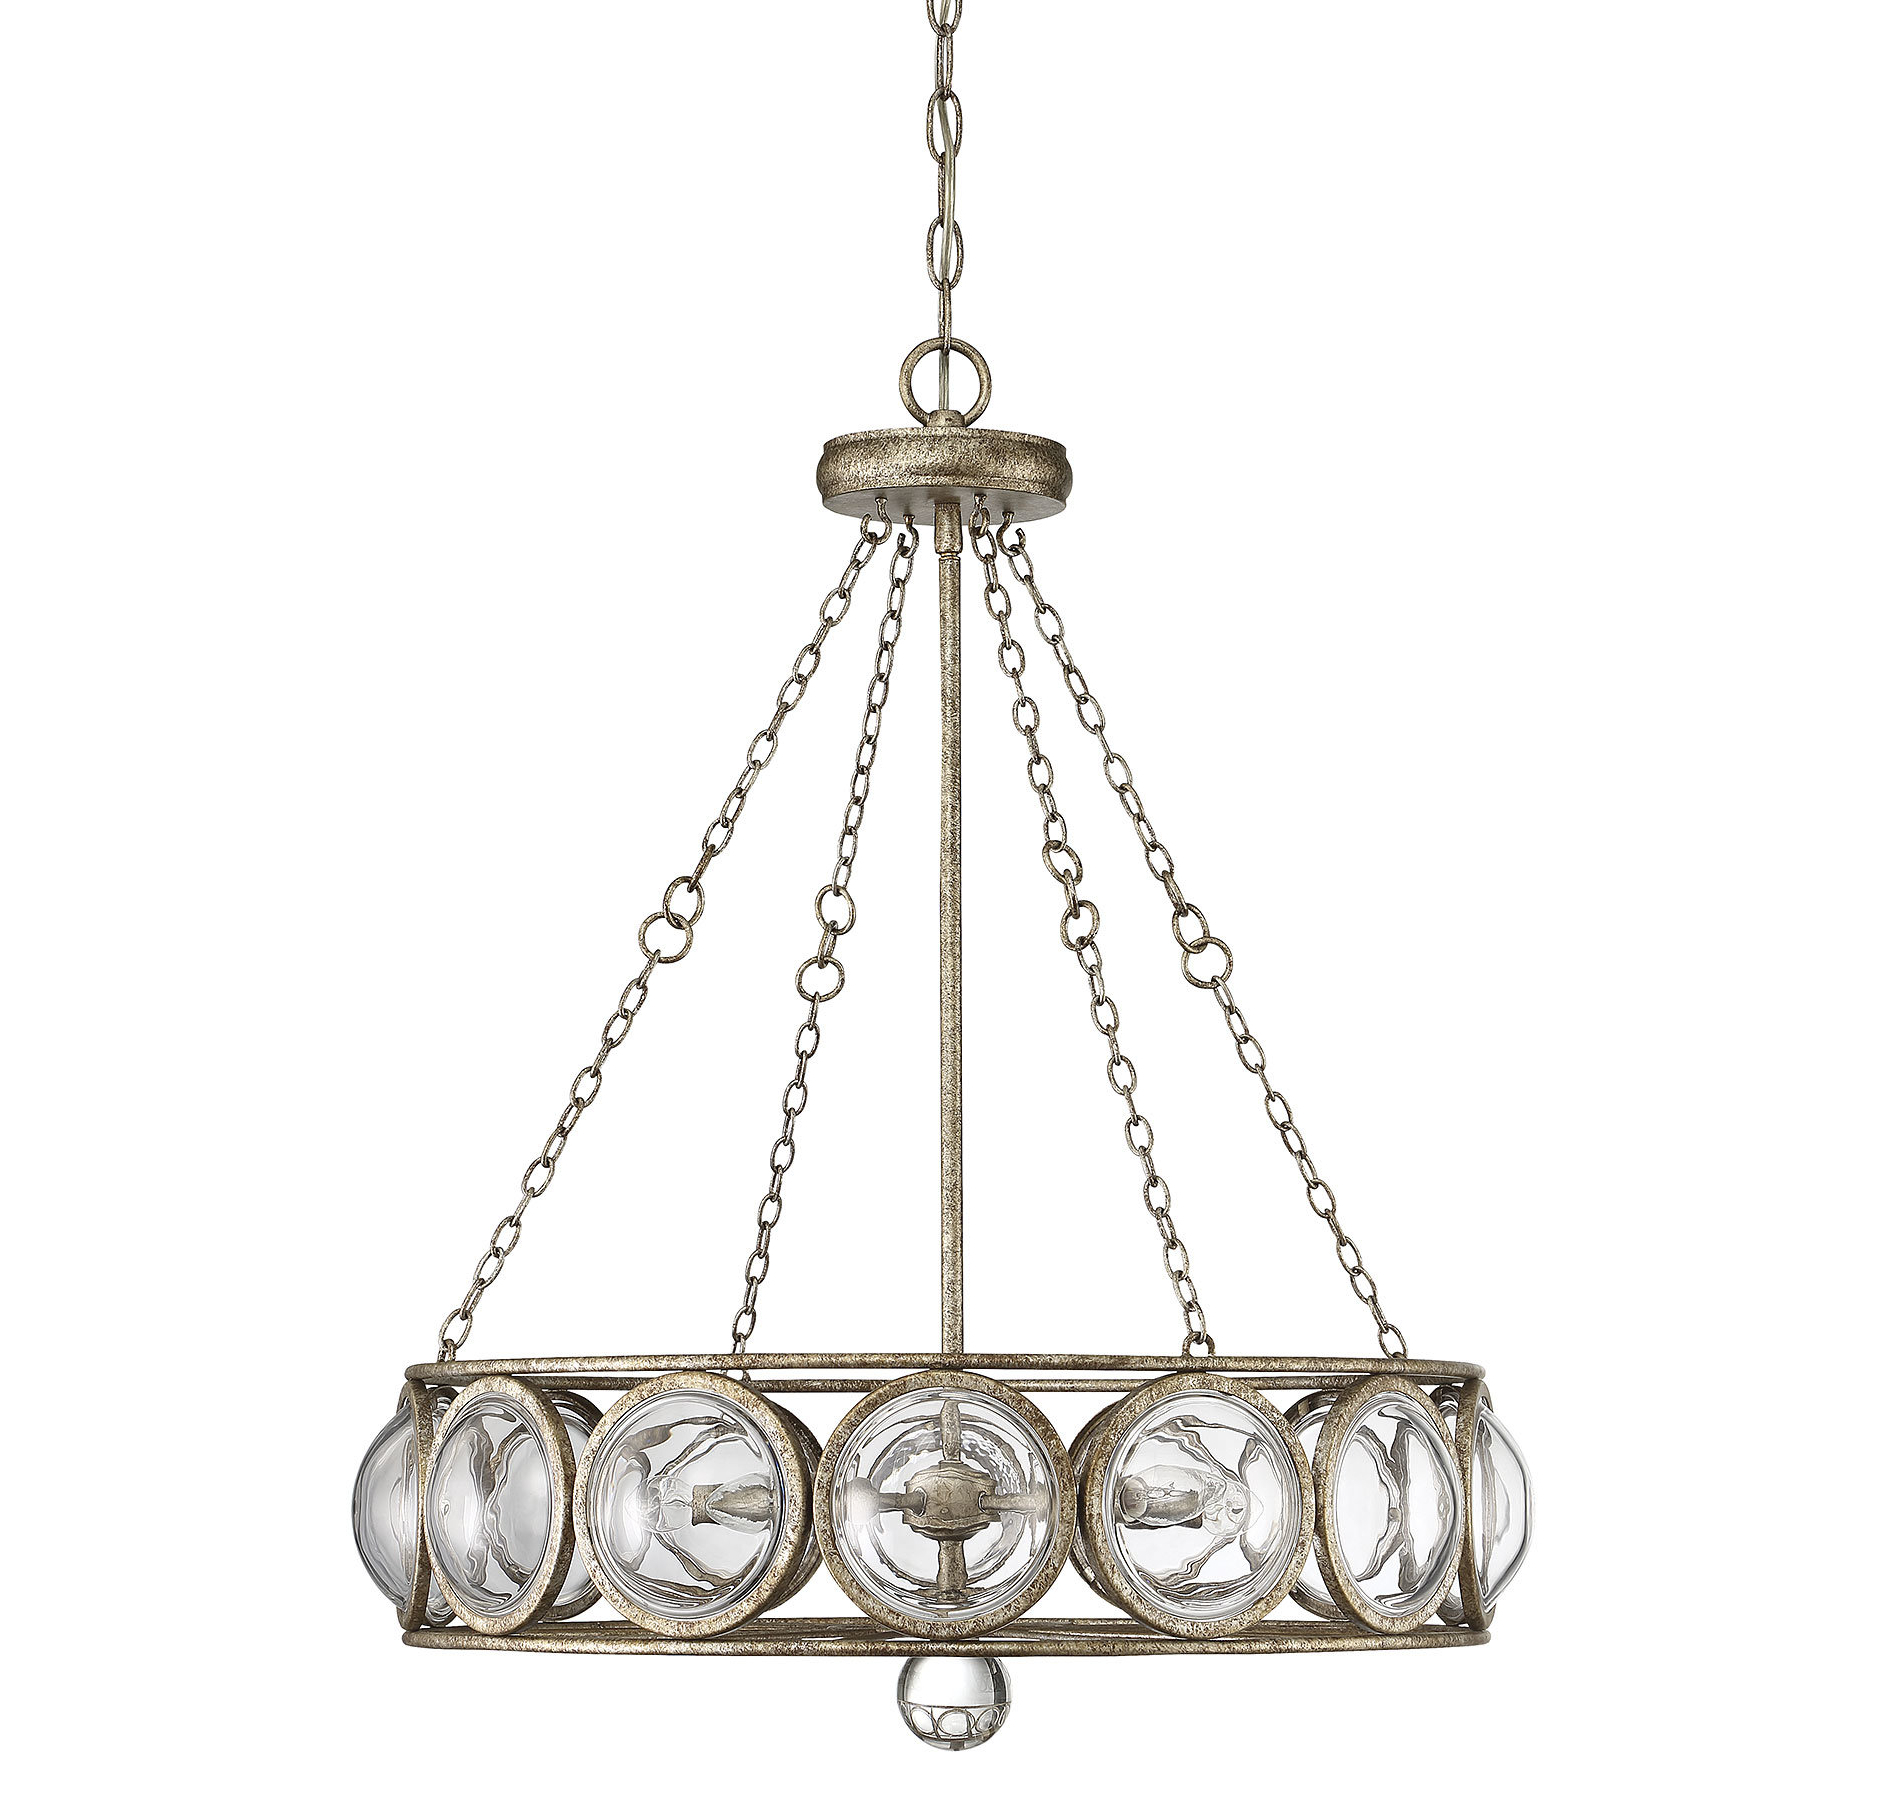 Hermione 5 Light Drum Chandeliers Within Latest Nellie 5 Light Drum Chandelier (View 11 of 20)